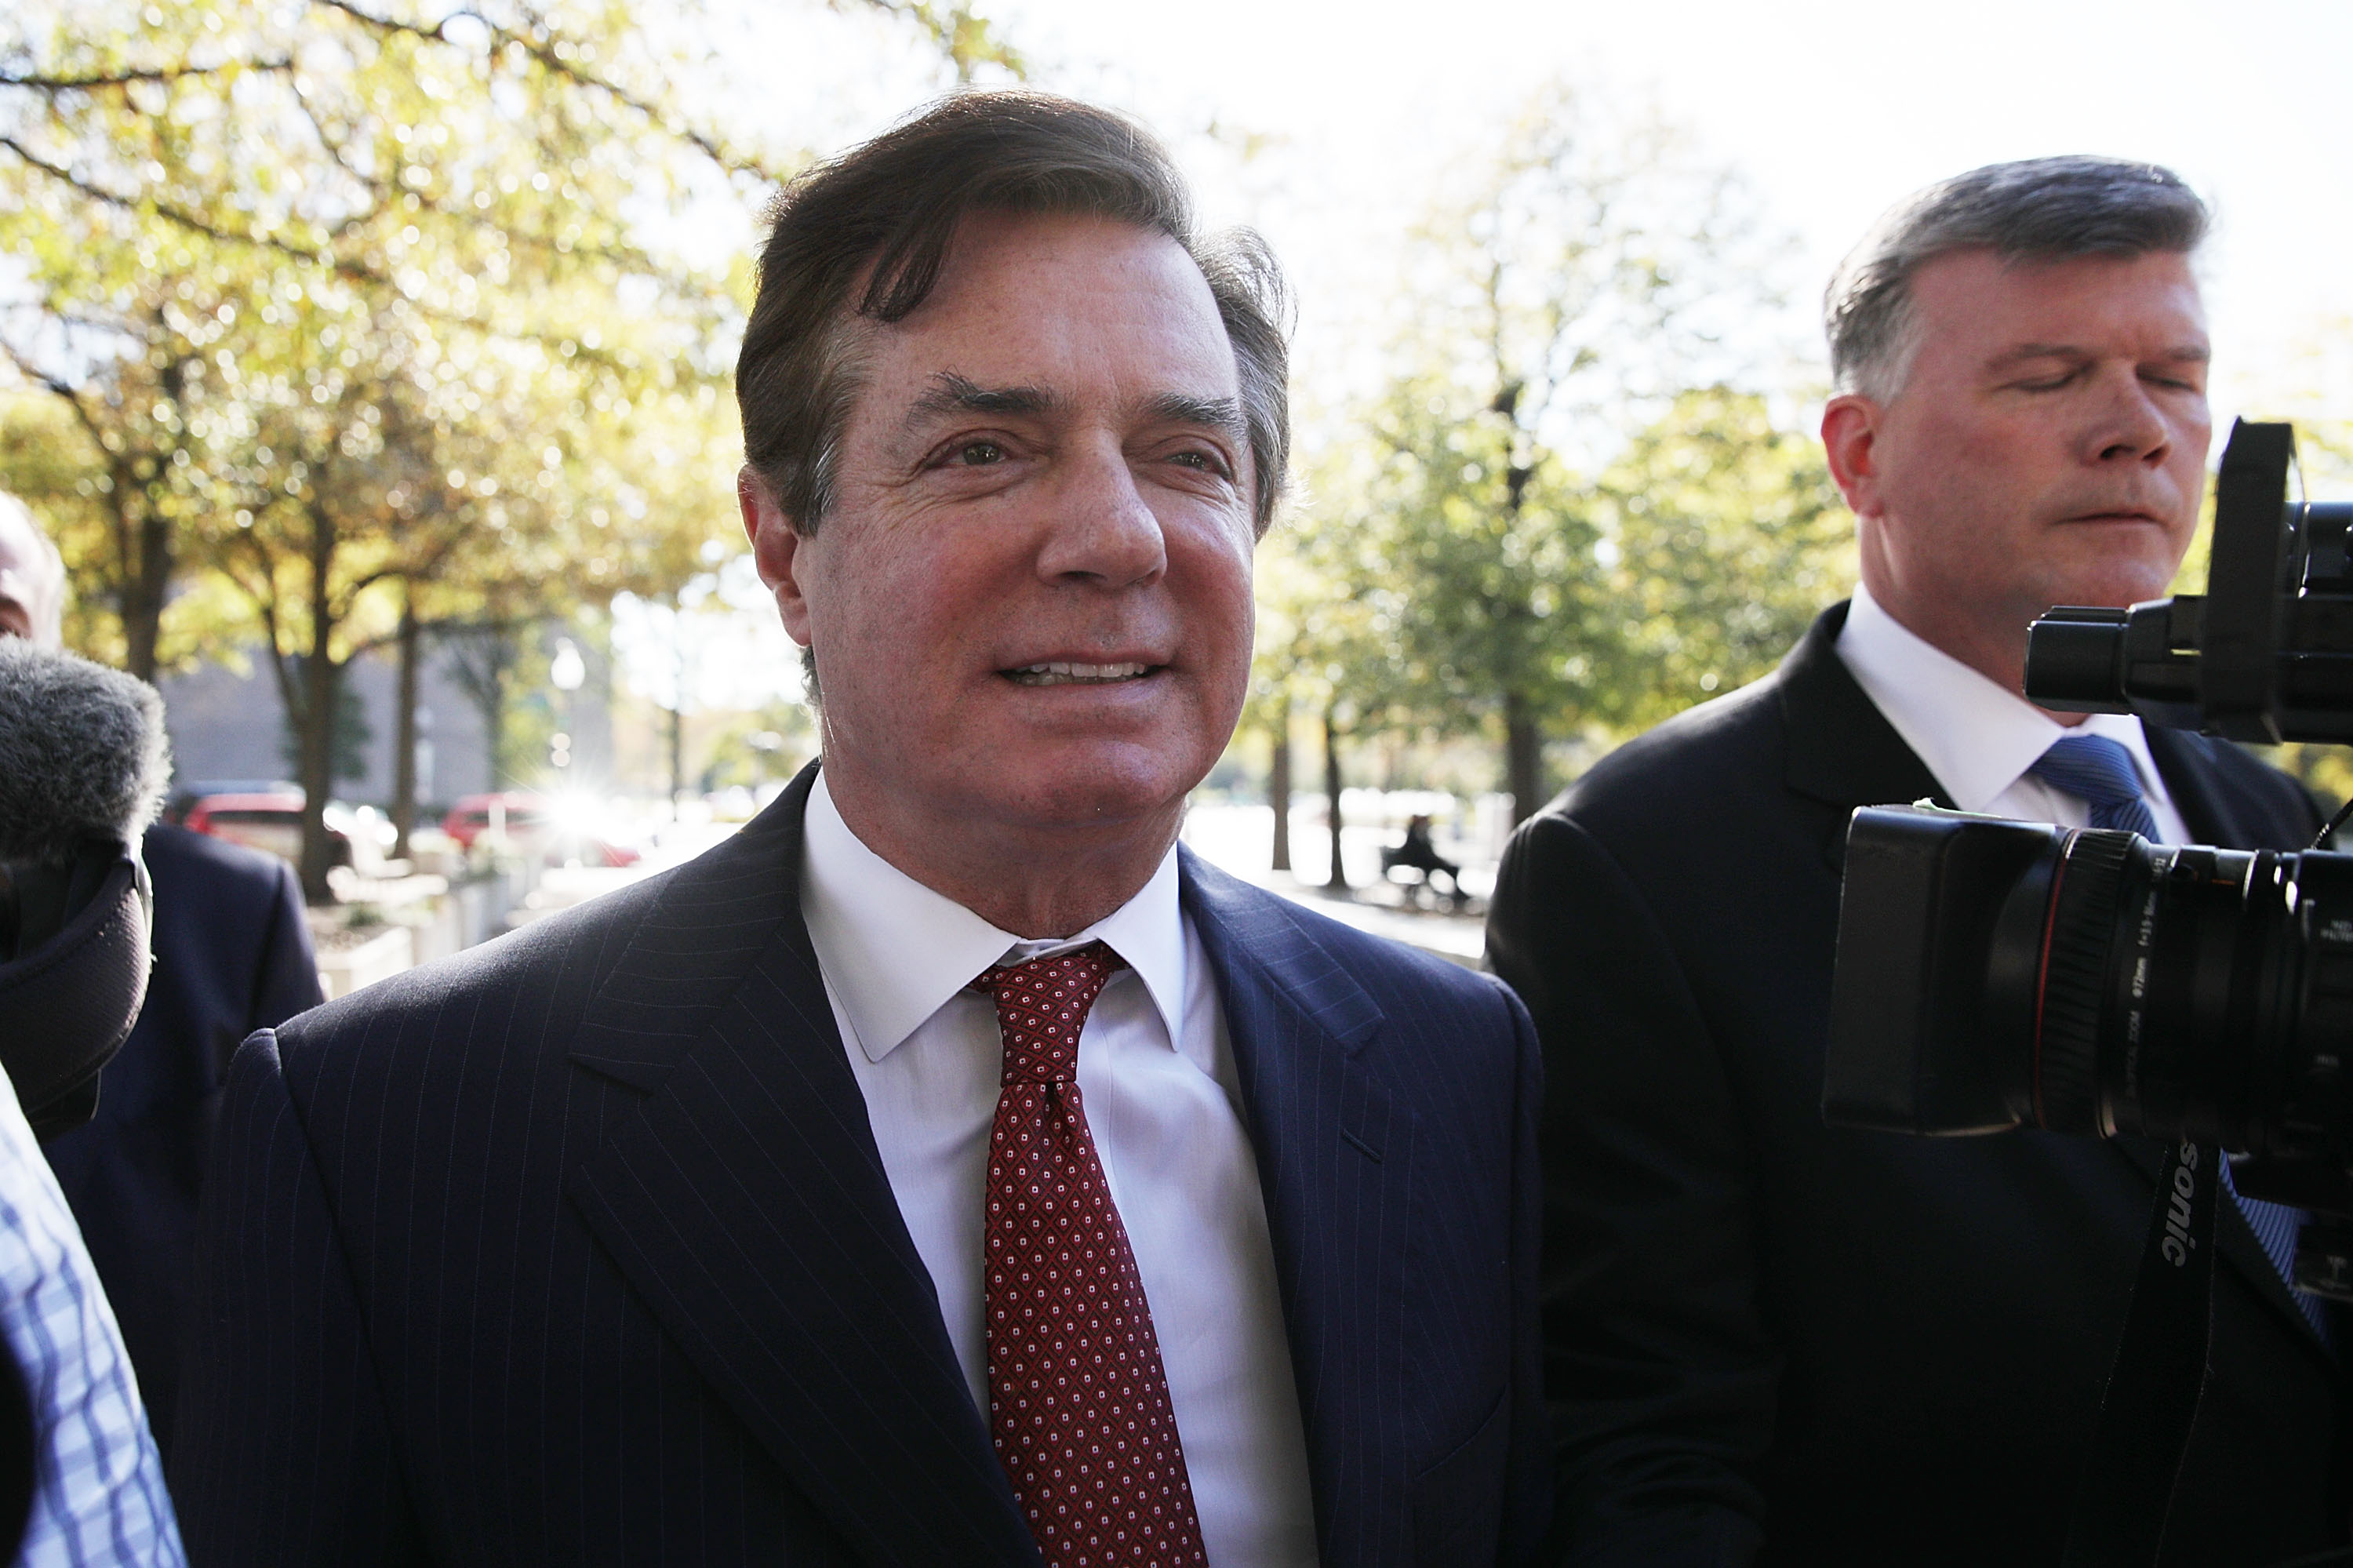 Mueller's heavily redacted new filing about Paul Manafort, decoded